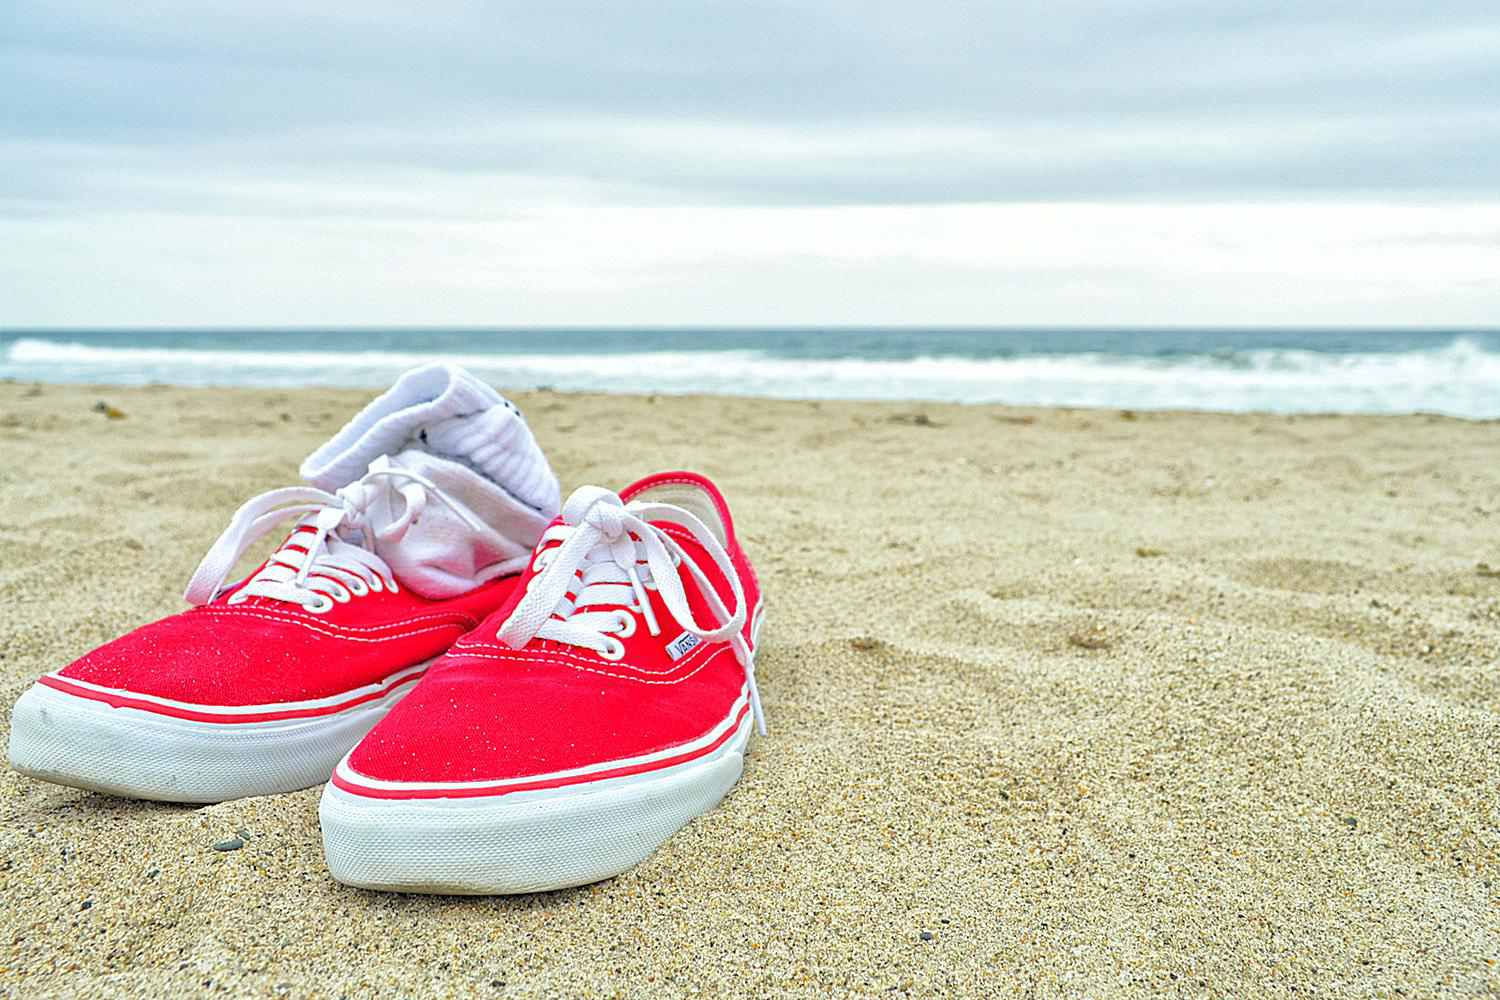 Zuma Beach is a Great Place to Ditch Your Shoes for a While